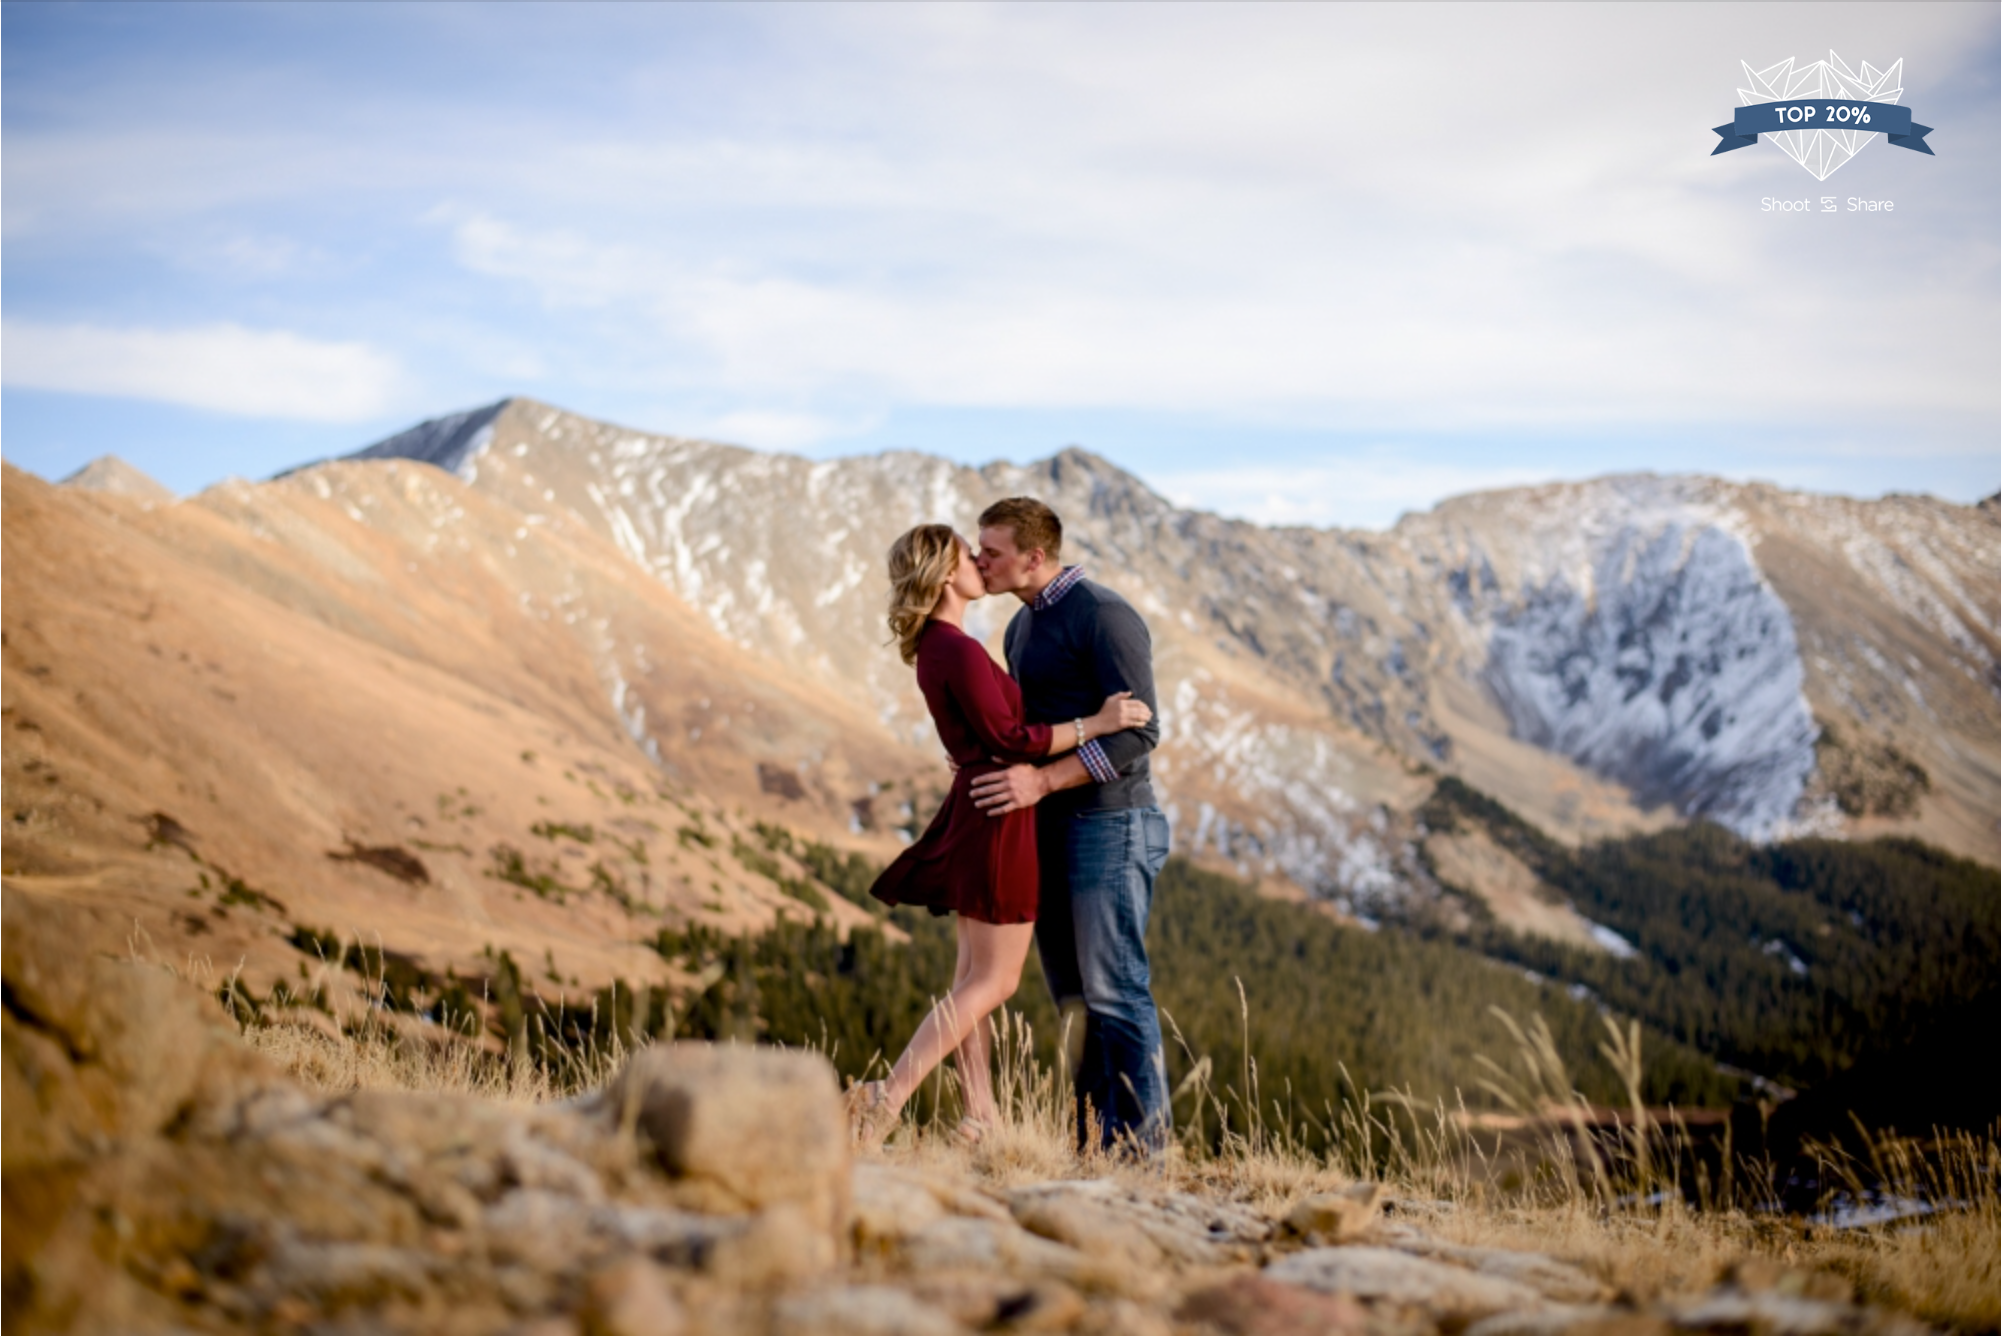 Loveland Pass Engagement - Engagement & Couples Category - 4,067/ 32,282